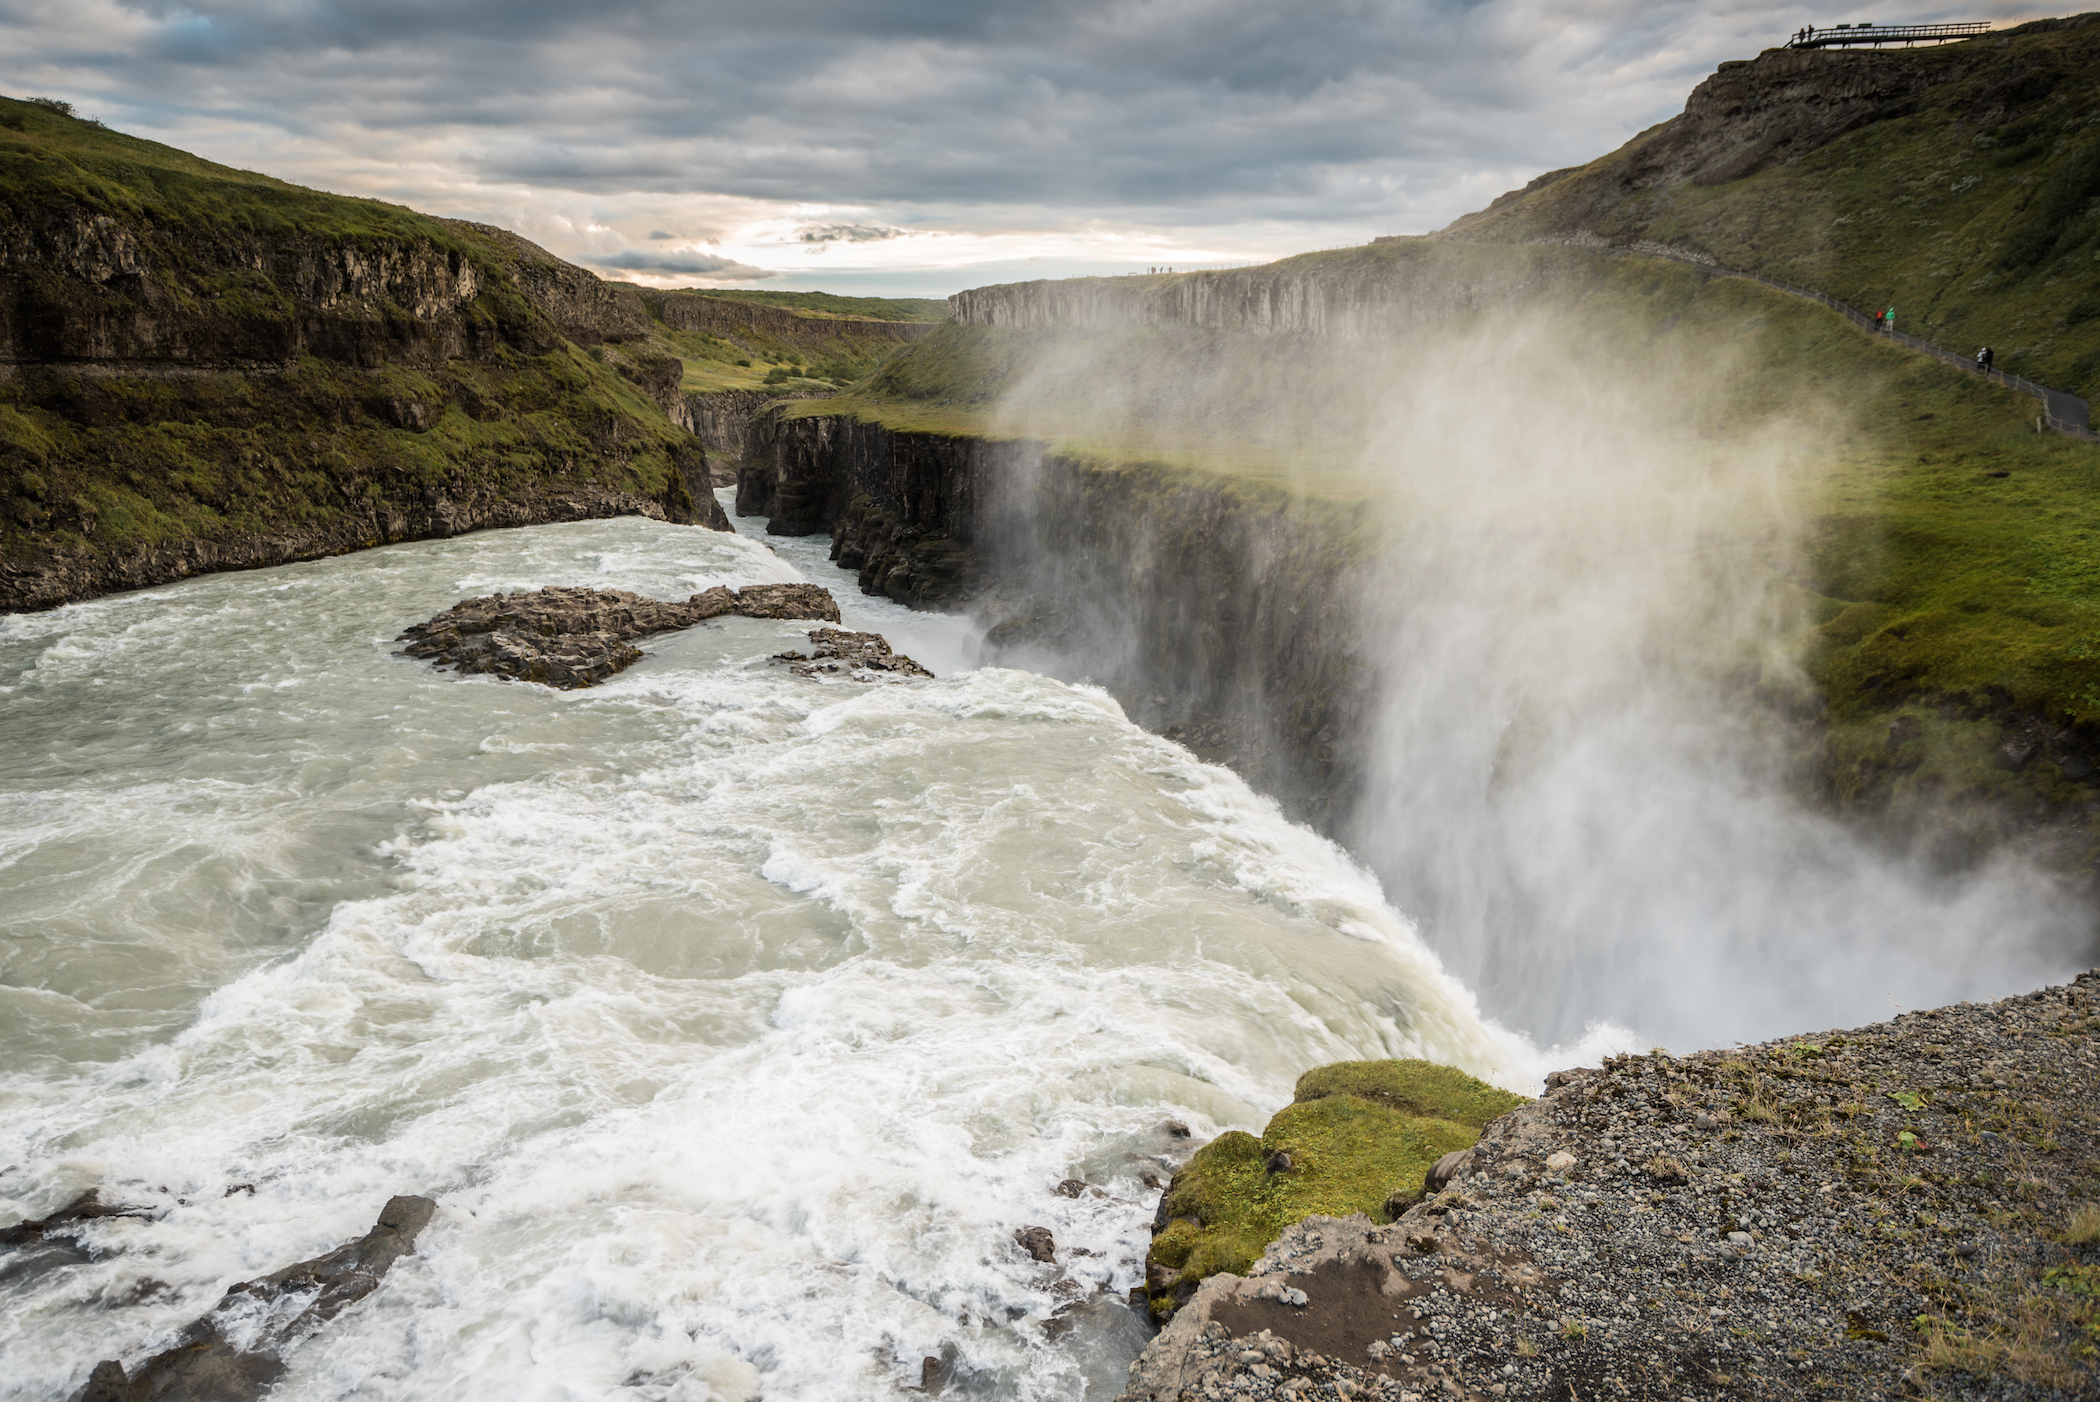 Gullfoss Waterfall: The Golden Falls